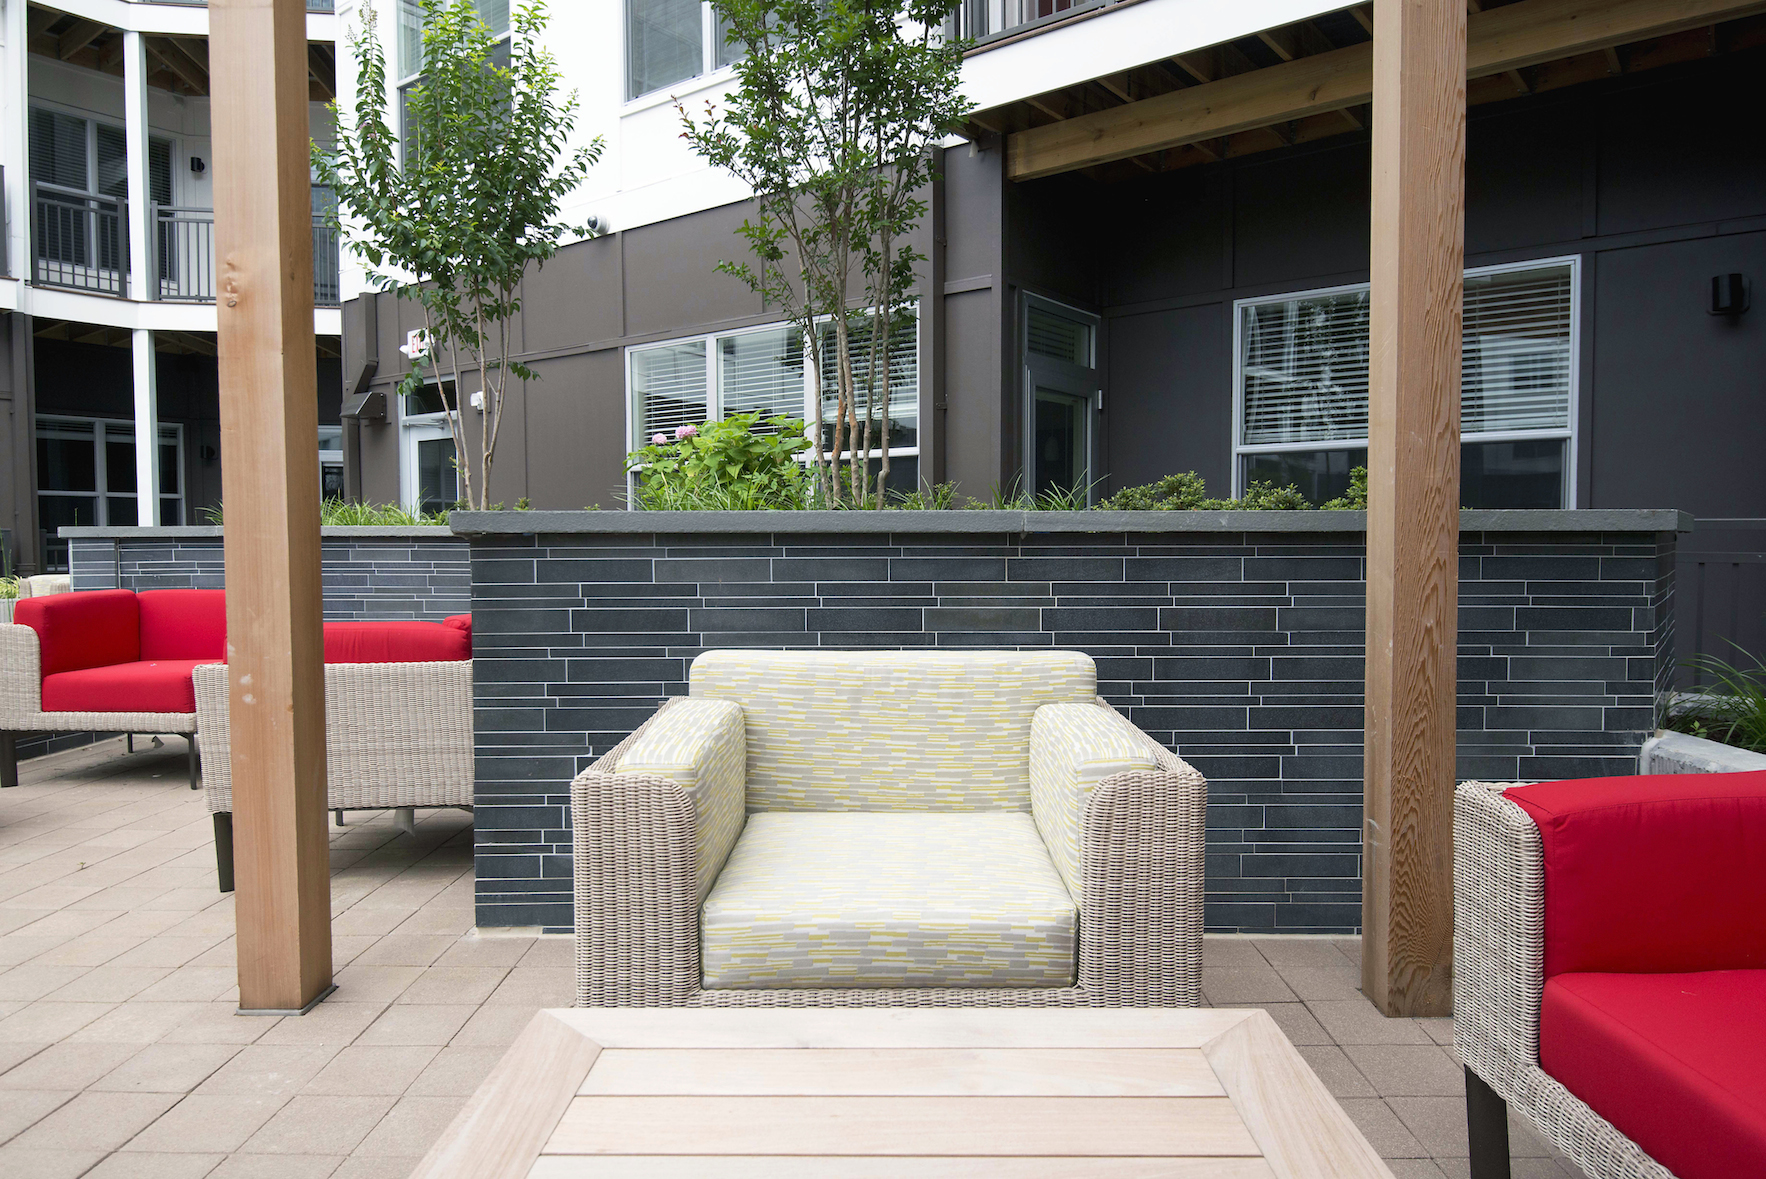 Grey Basalt Interlocking Tile - Landbay J - Washington DC - Outdoor Living